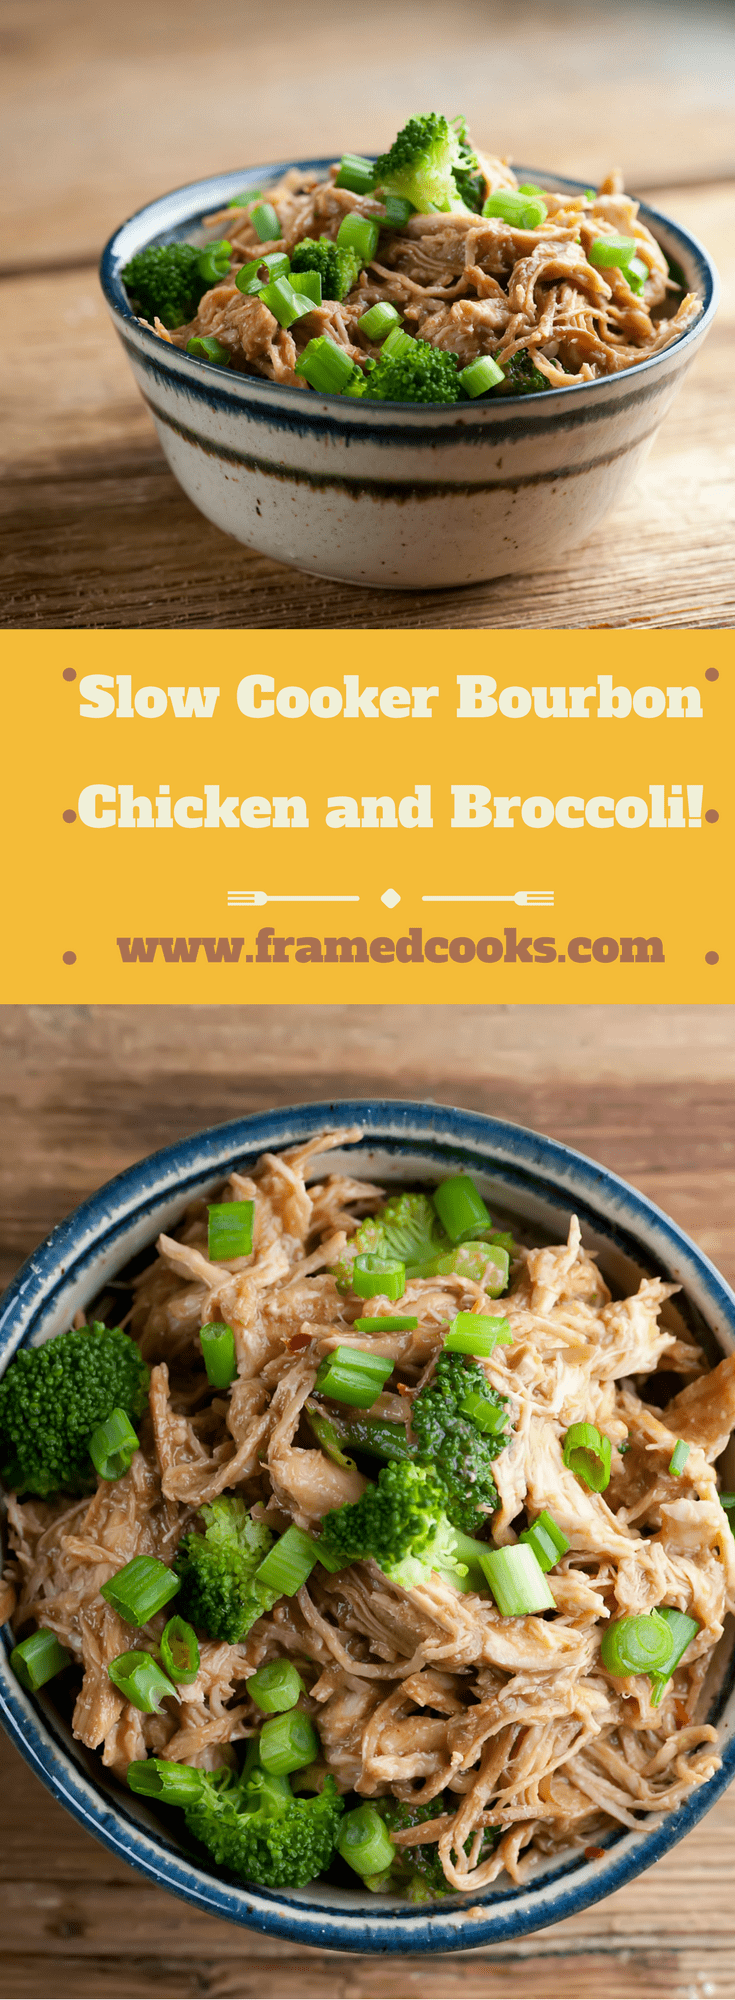 This easy recipe for slow cooker bourbon chicken and broccoli will liven up your usual chicken dinner.  Find that Crock-Pot and sass up your supper!